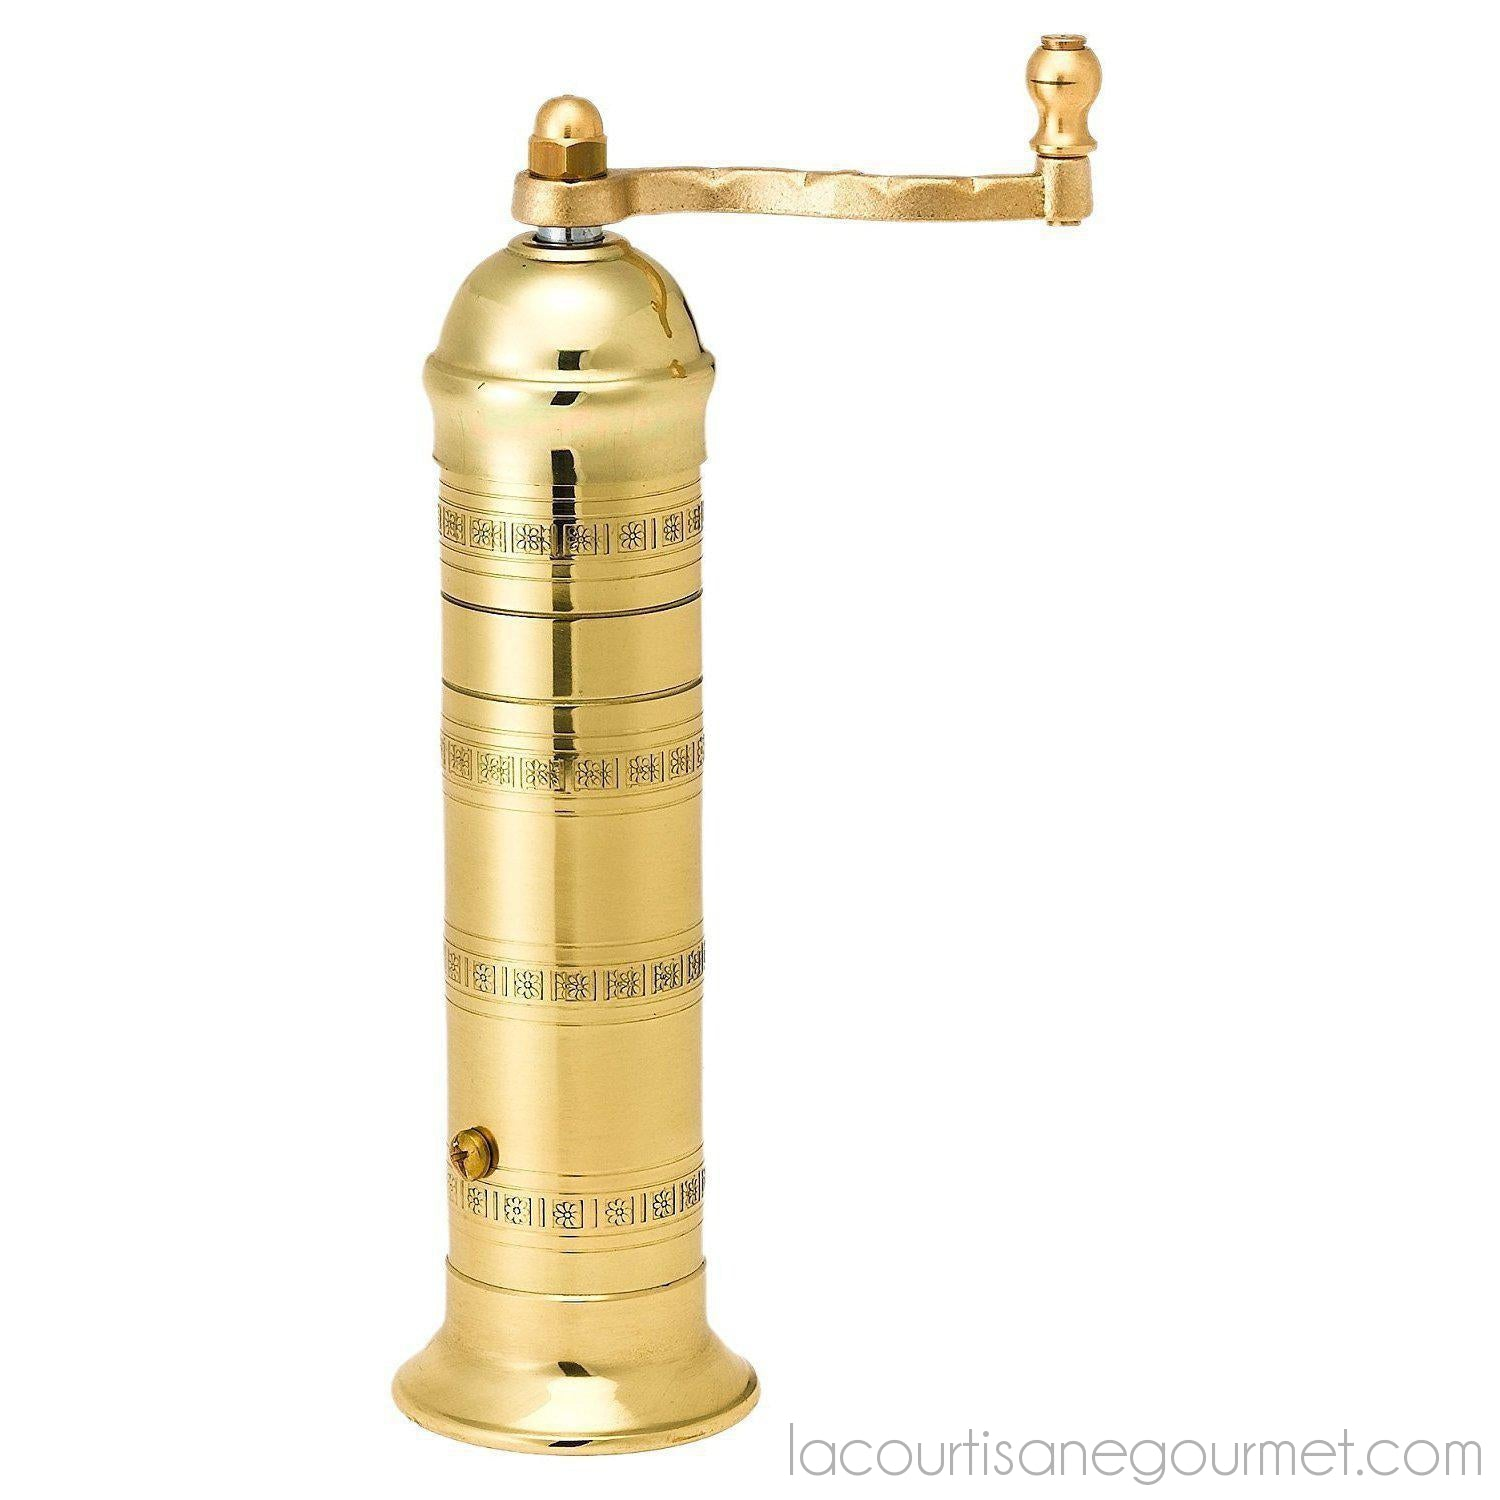 "Pepper Mill Imports Atlas Pepper Mill, Brass, 8"" - - La Courtisane Gourmet Food"